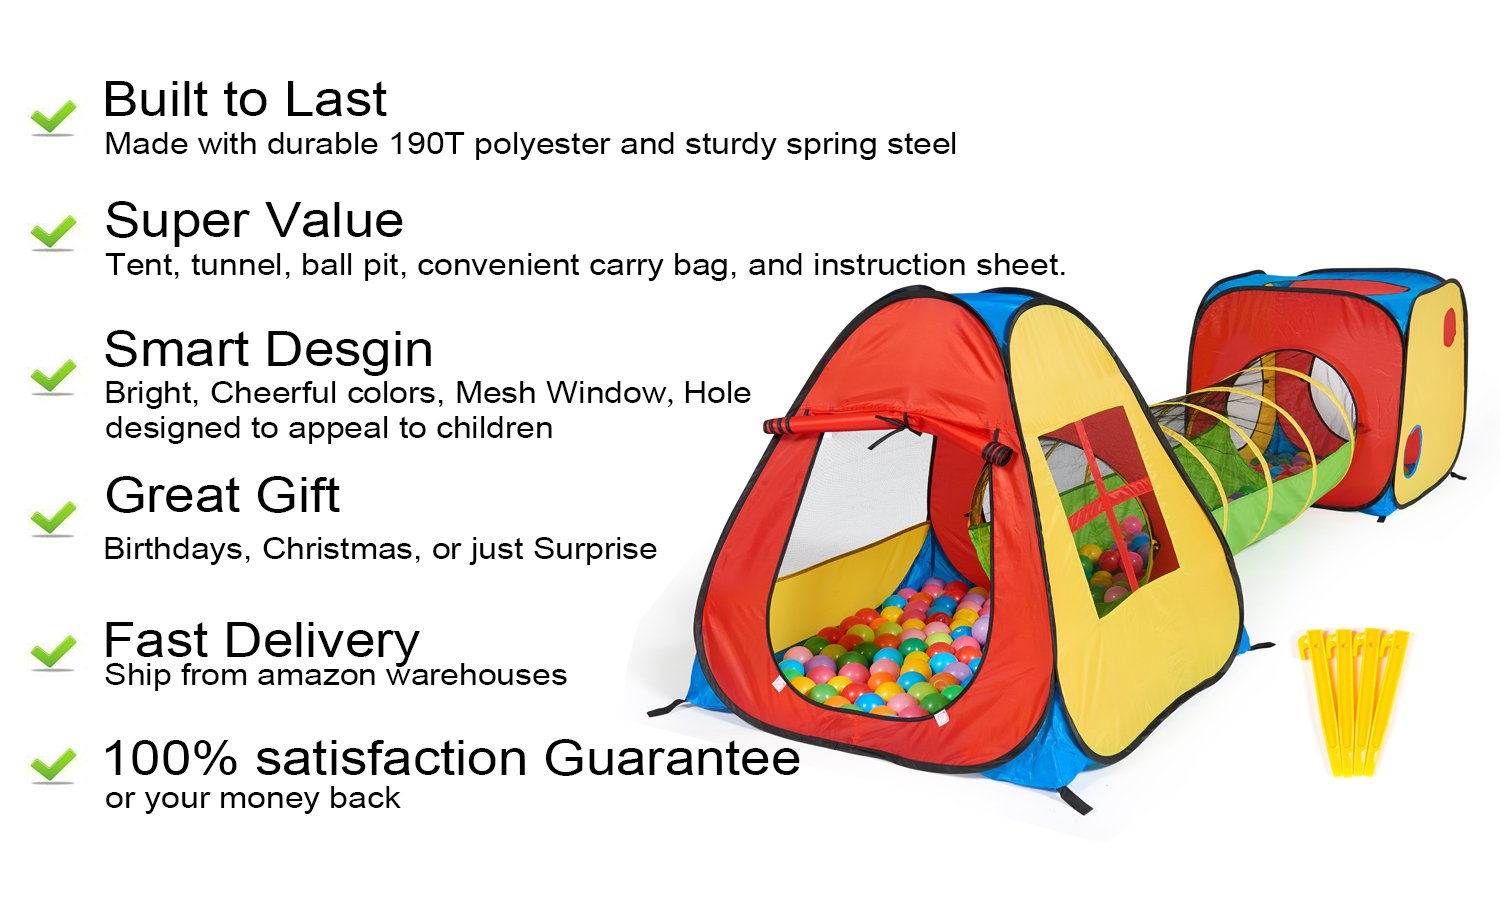 UTEX 3 in 1 Pop Up Play Tent with Tunnel, Ball Pit for Kids, Boys, Girls, Babies and Toddlers, Indoor/Outdoor Playhouse by UTEX (Image #3)